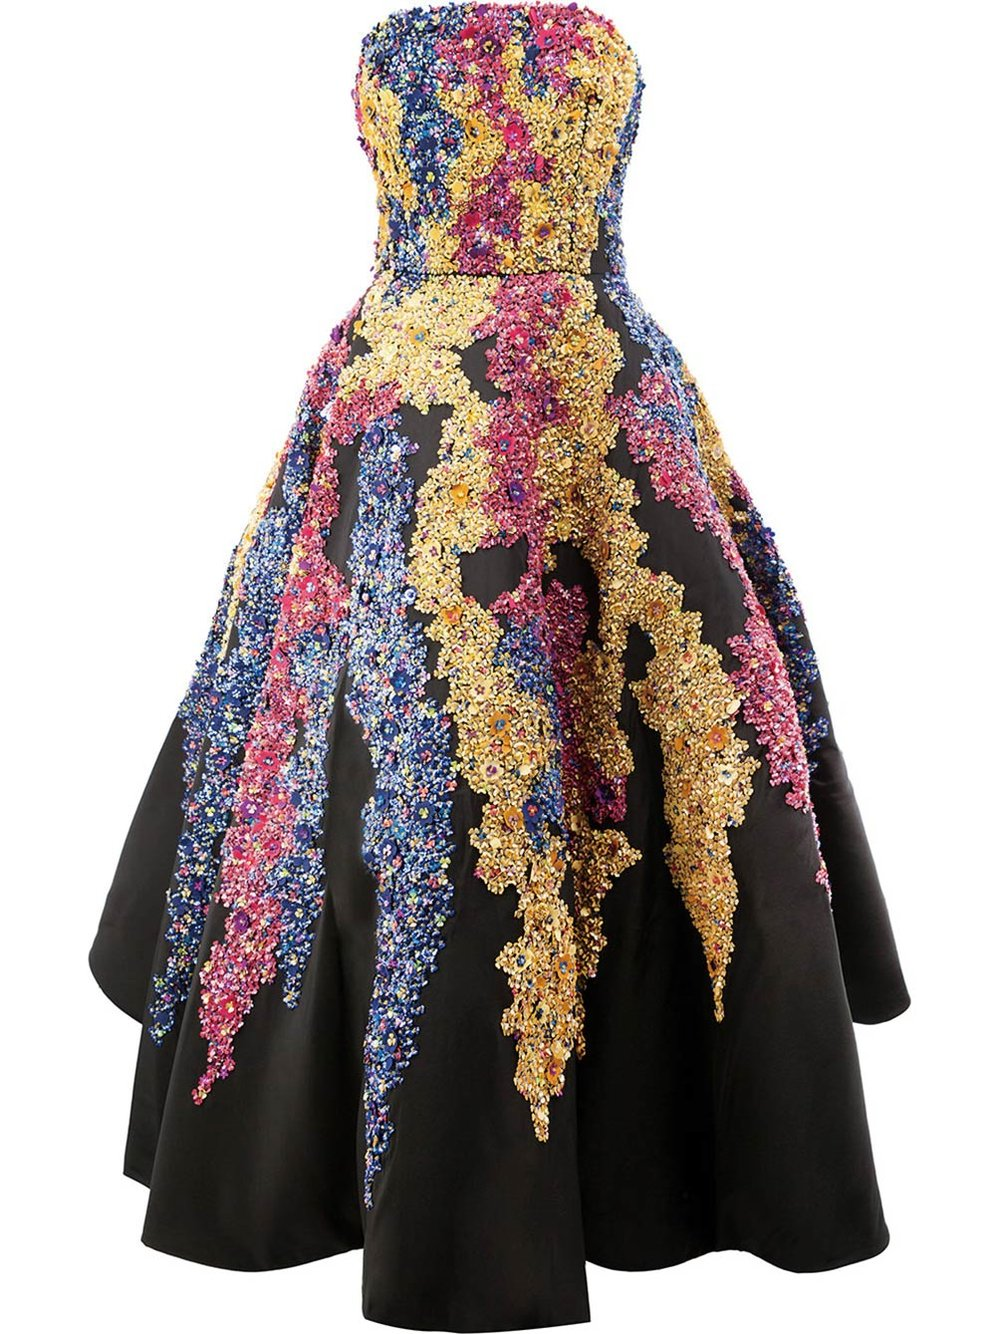 Tendrils Embroidered Silk-Faille Gown by Oscar de la Renta